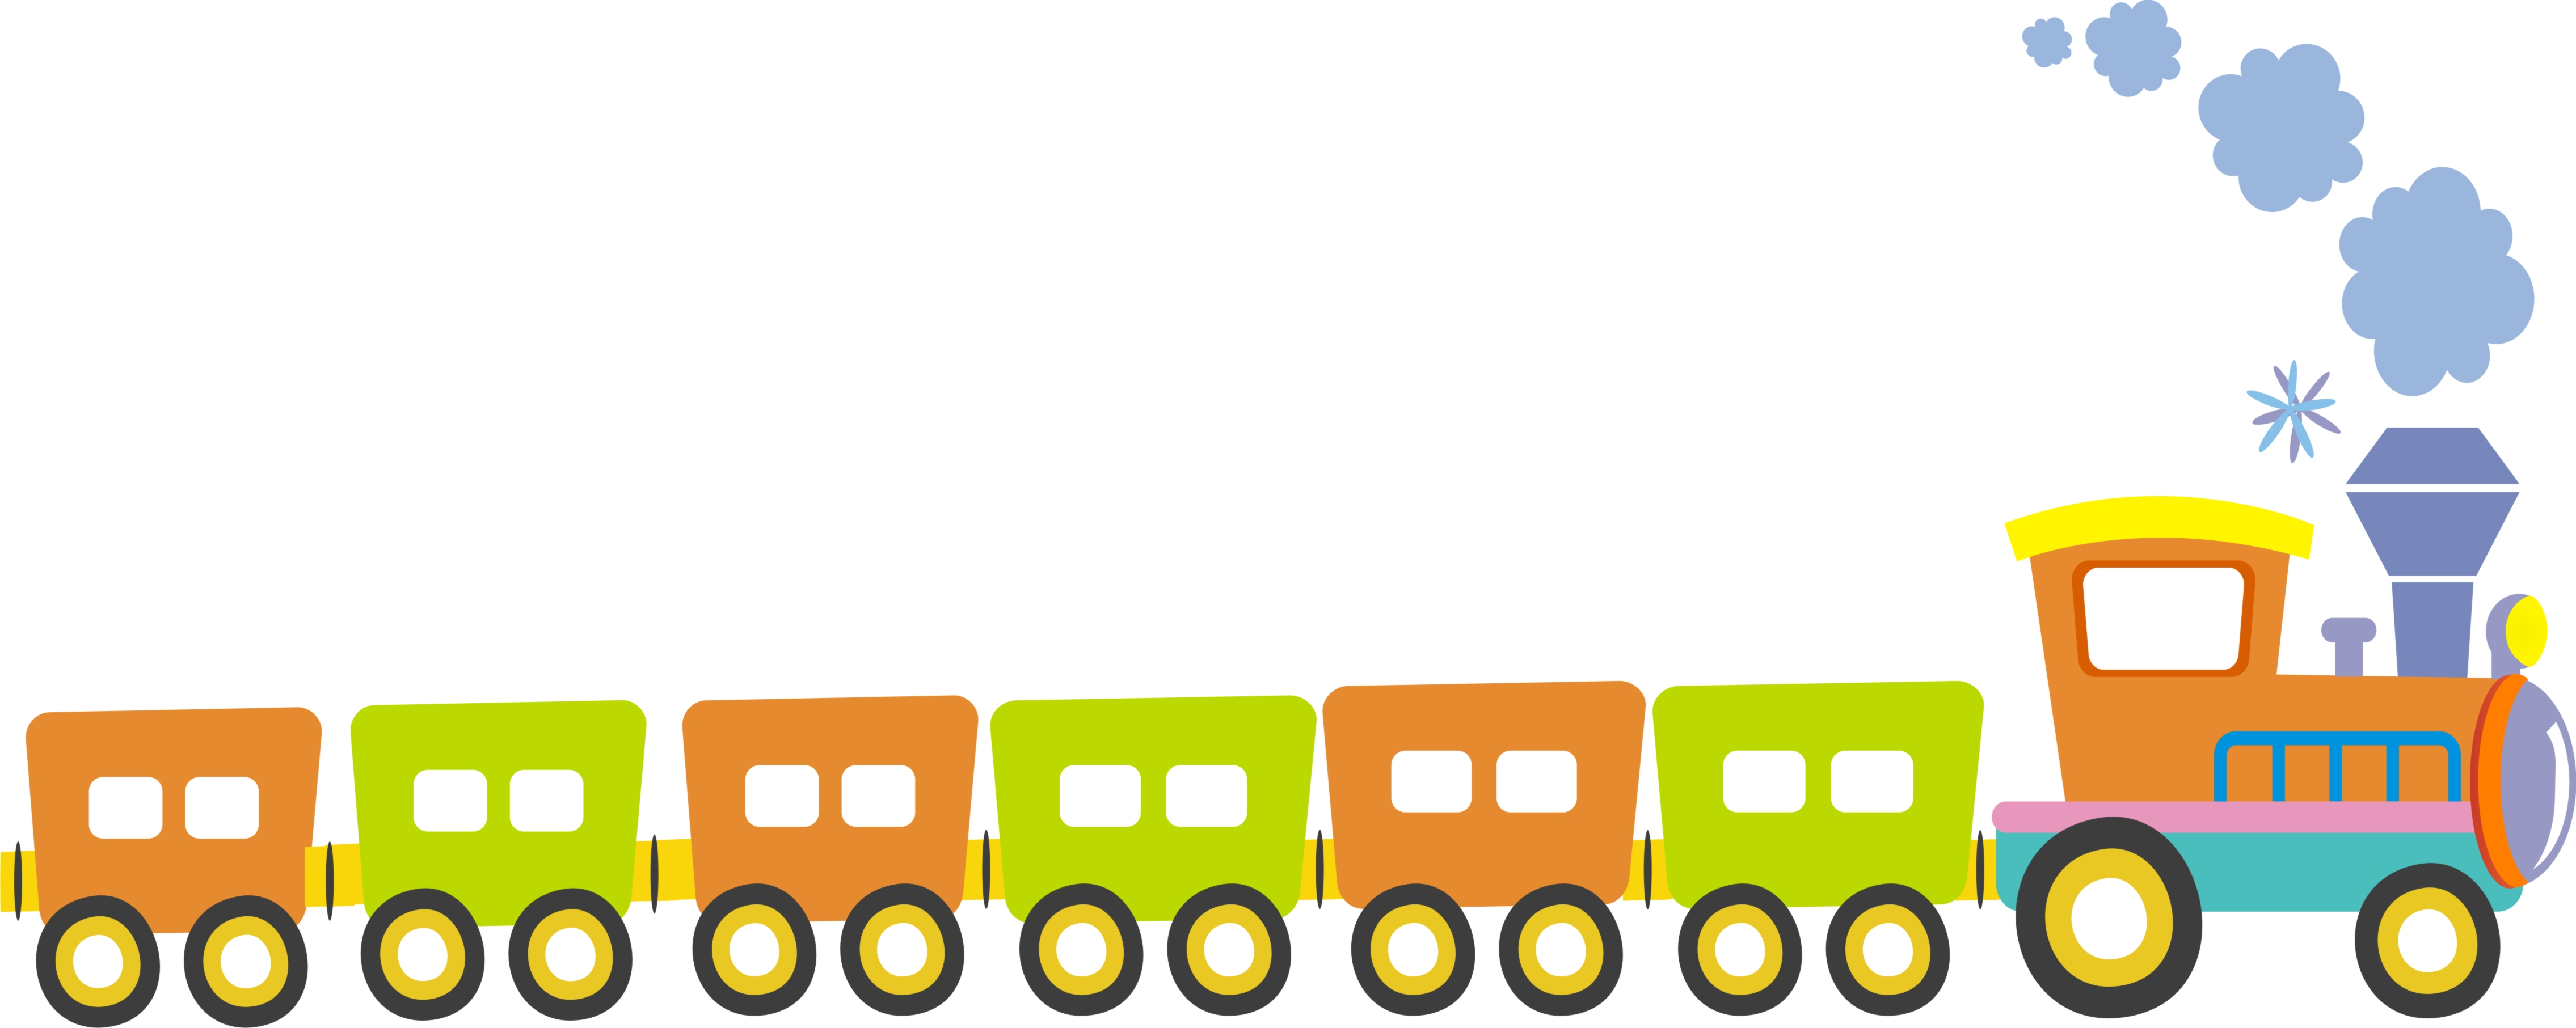 4541x1813 Image Of Choo Choo Train Clipart